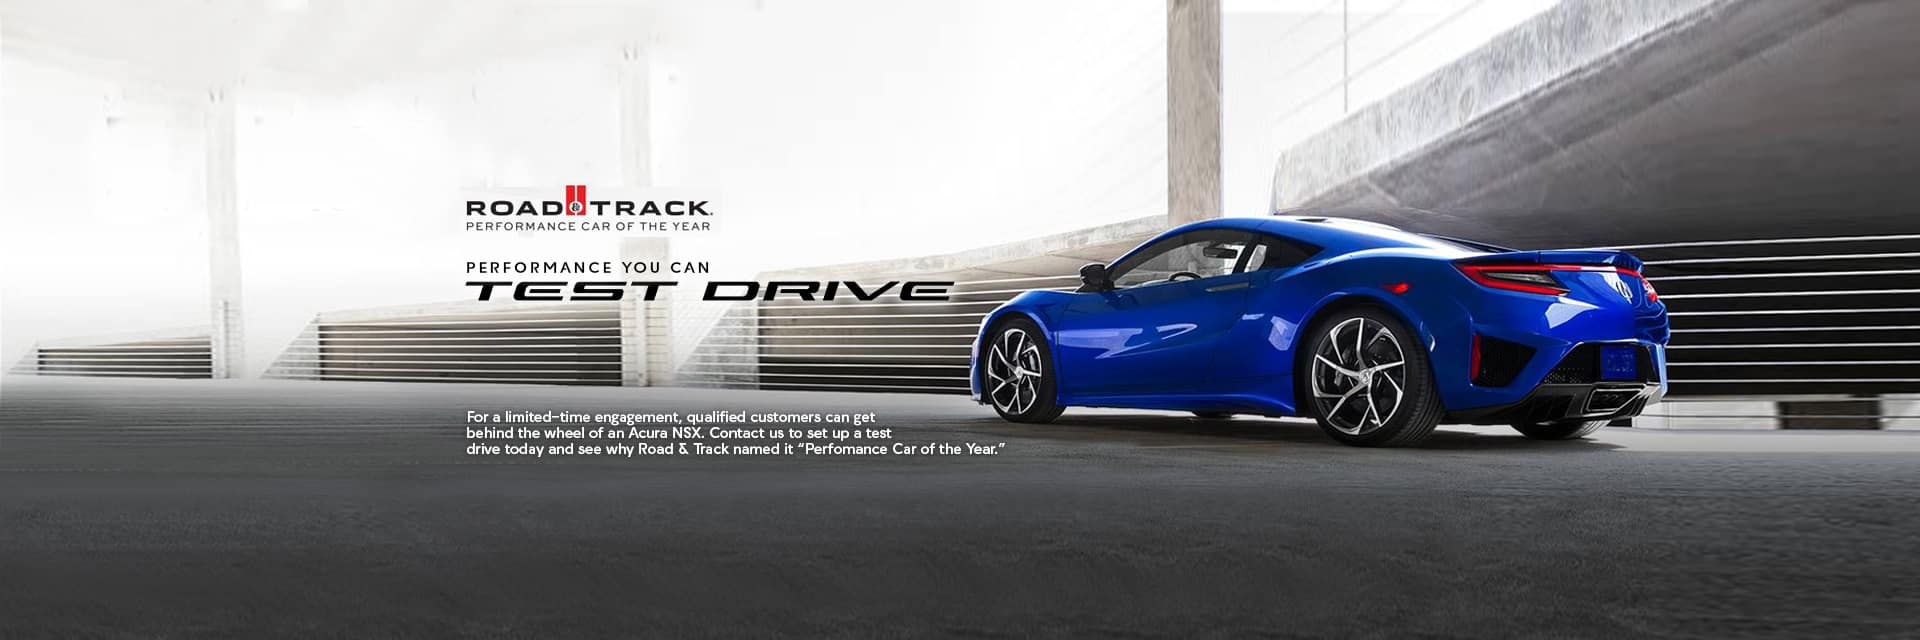 Mcgrath Acura Of Downtown Chicago Acura And Used Car Dealer